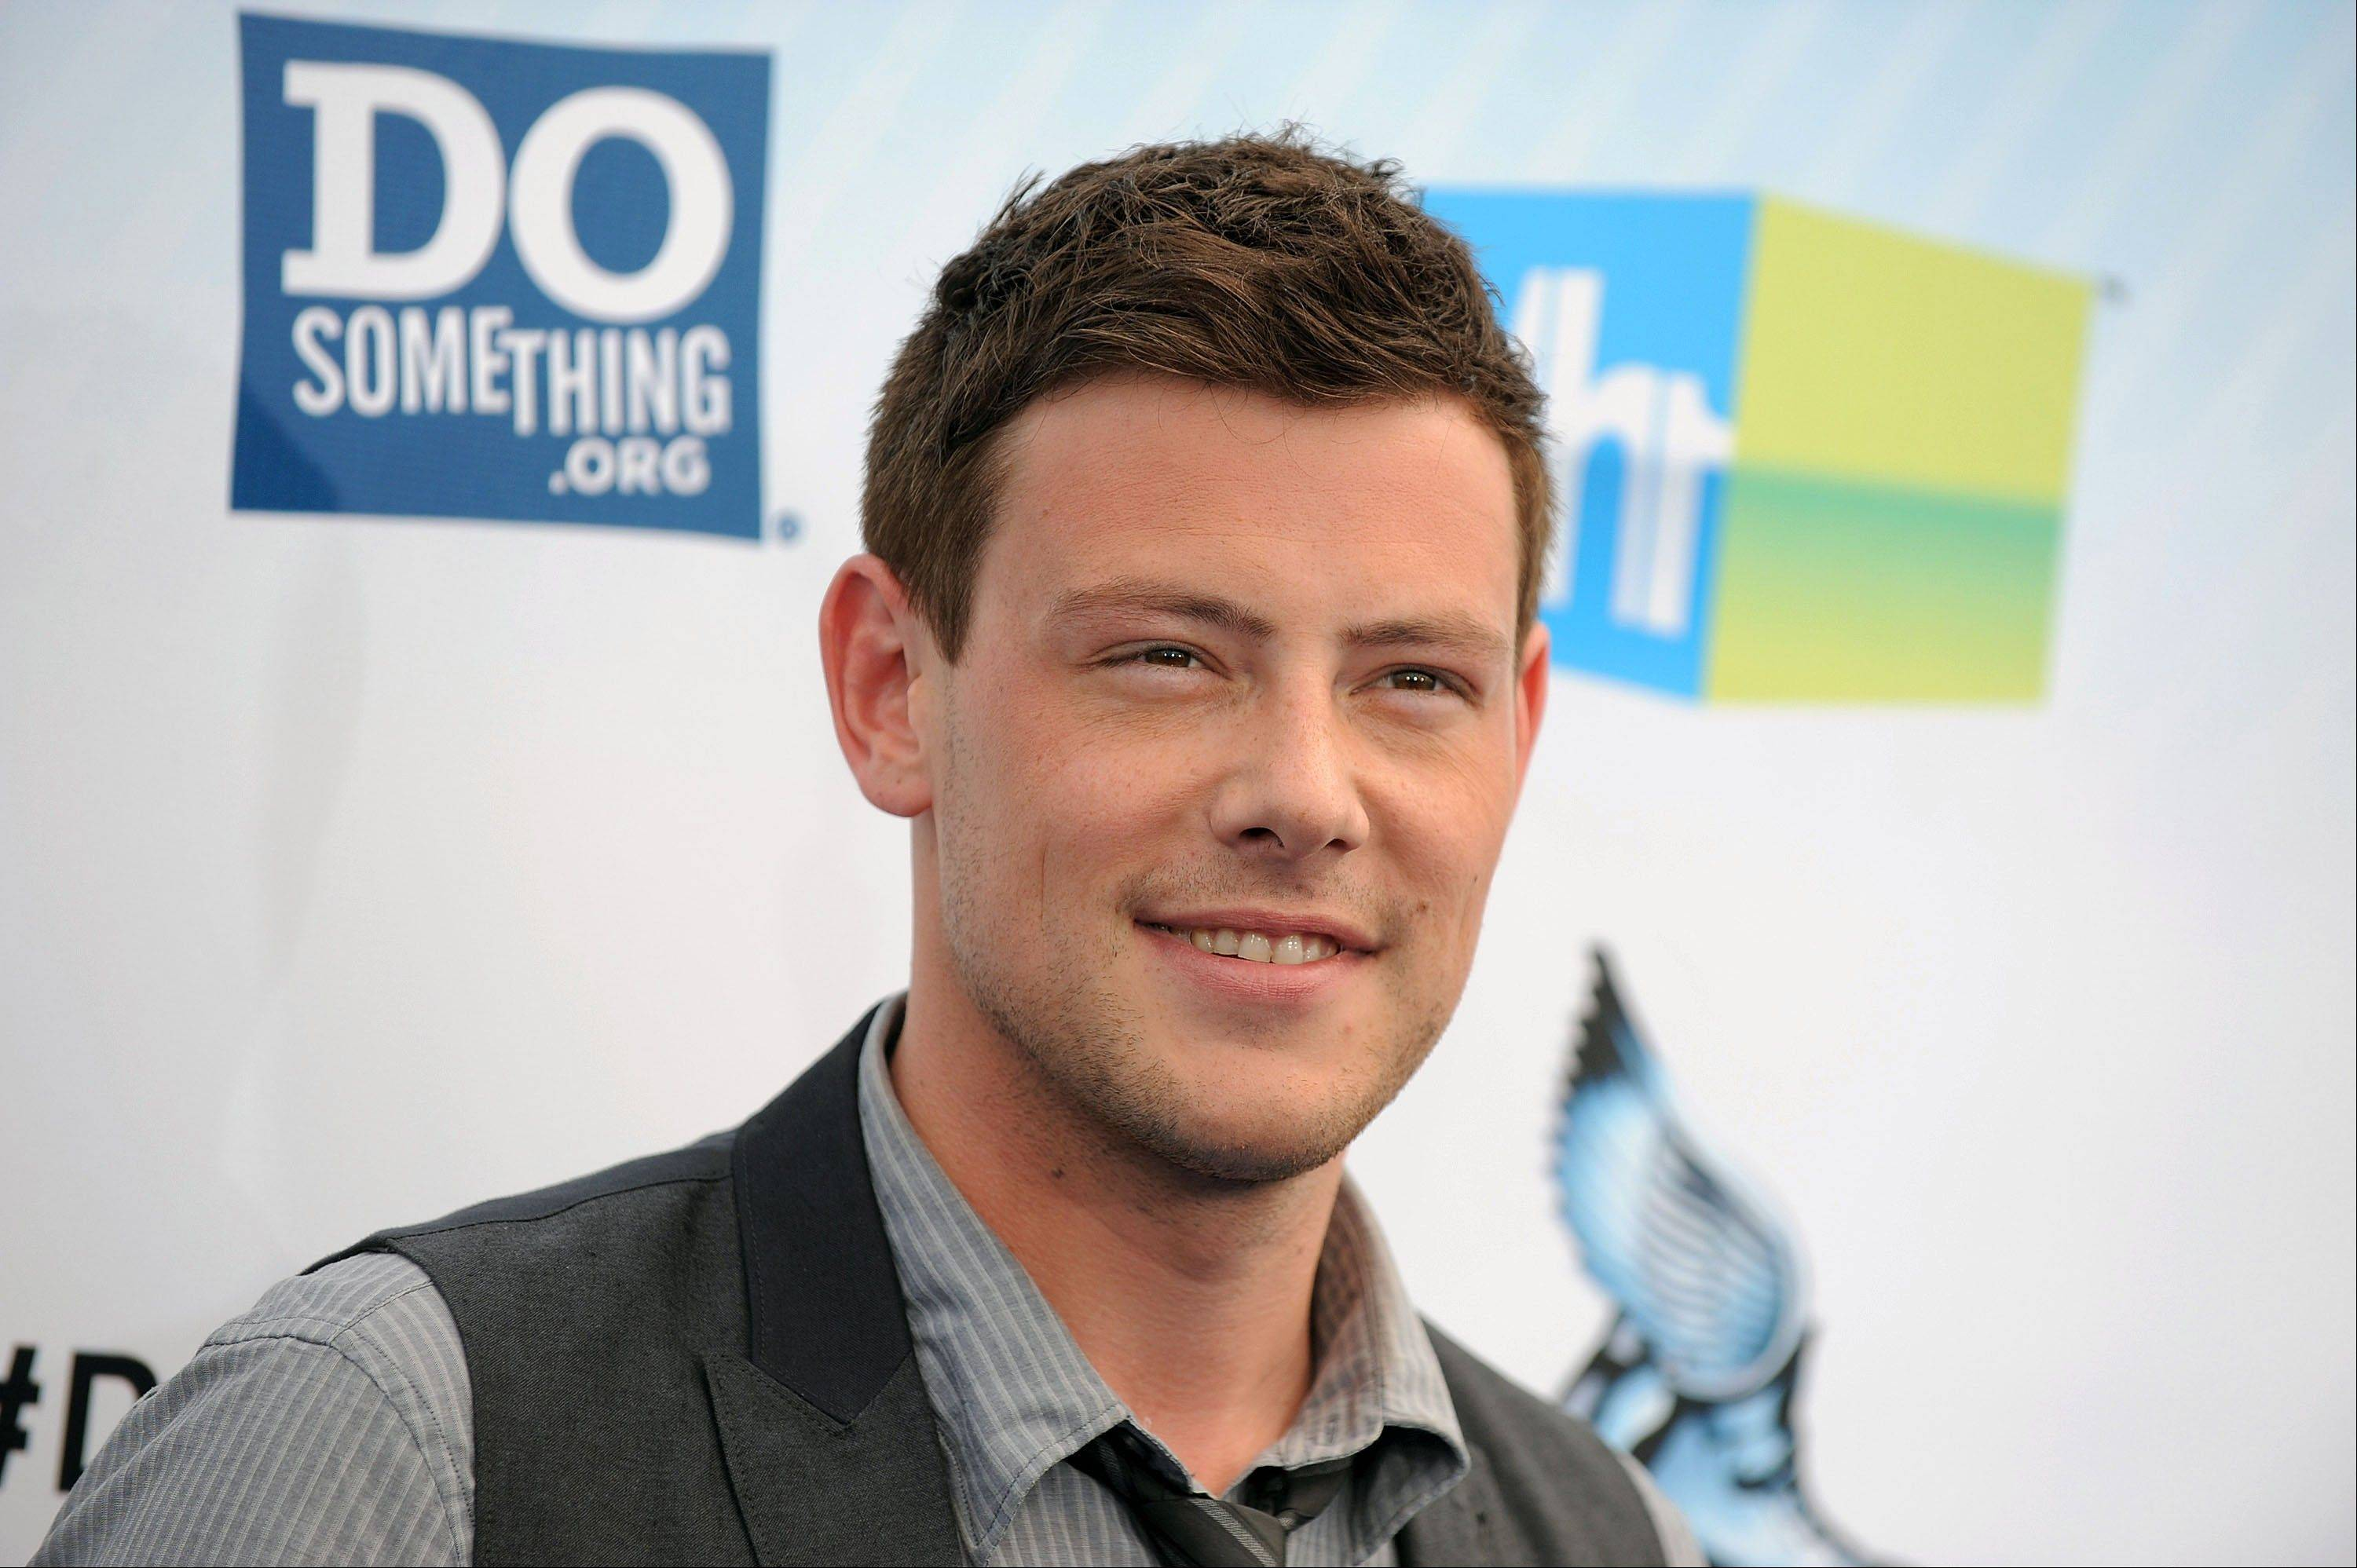 The cast and crew of �Glee� is saying goodbye to star Cory Monteith, who died earlier this month.